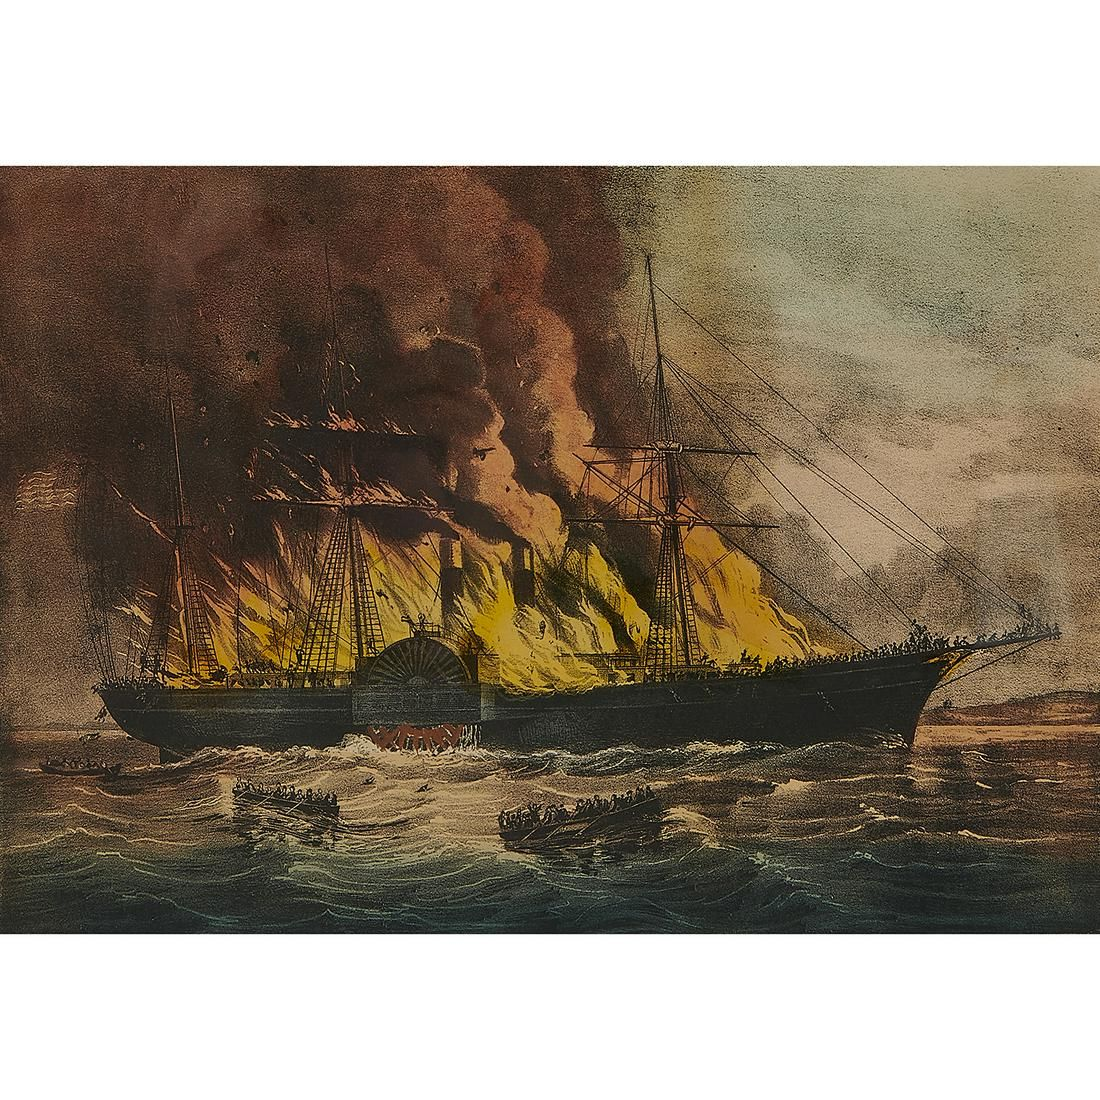 Currier & Ives, Burning of the Steamship, 1862